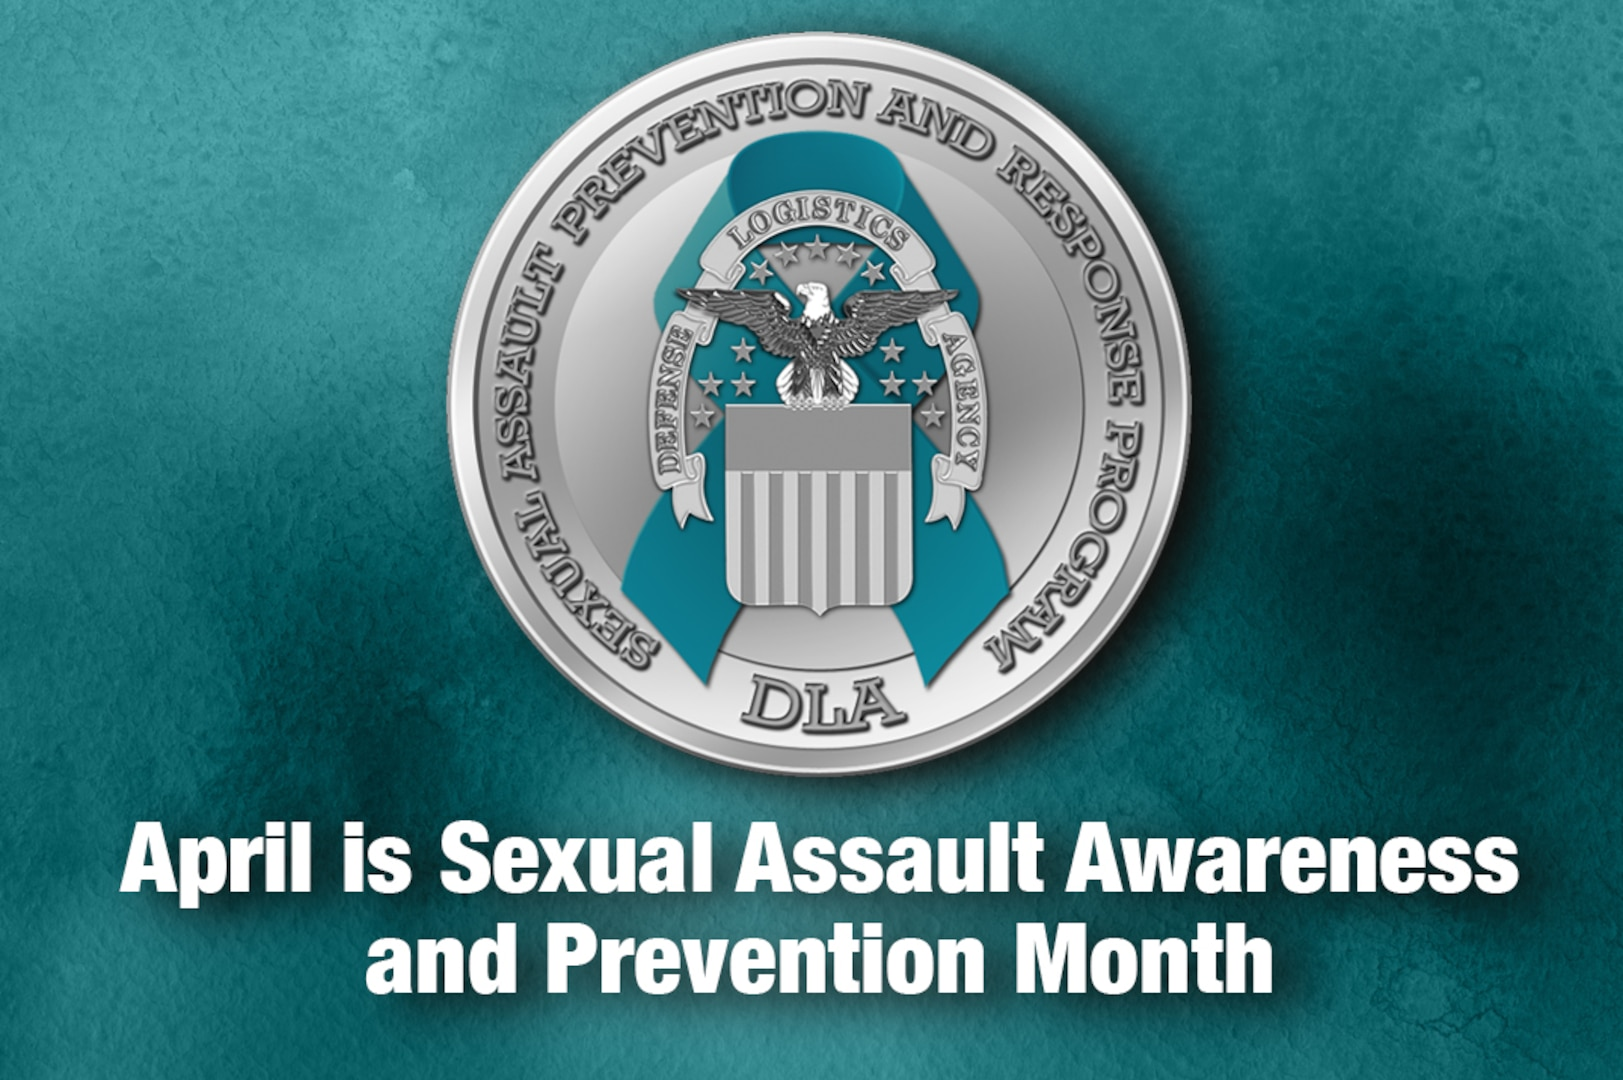 DLA leadership has made prevention of and response to sexual assault a top priority.